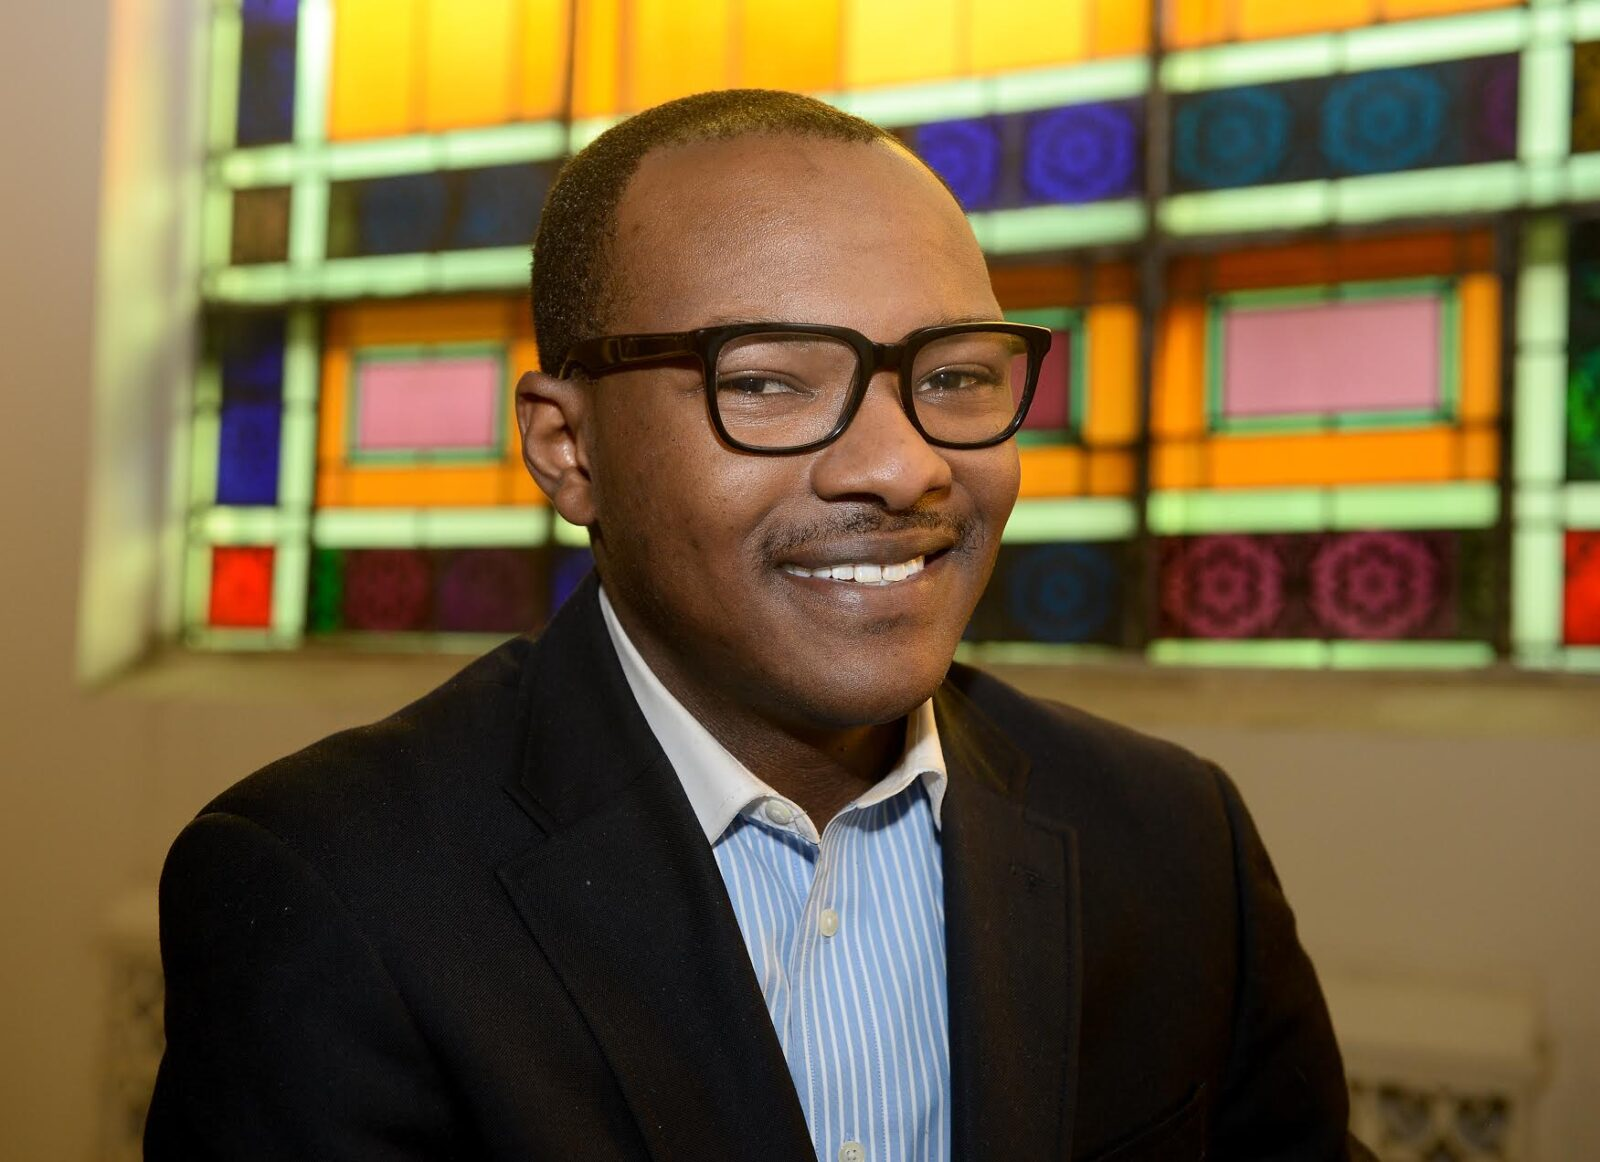 Rev. Tyrone McGowan